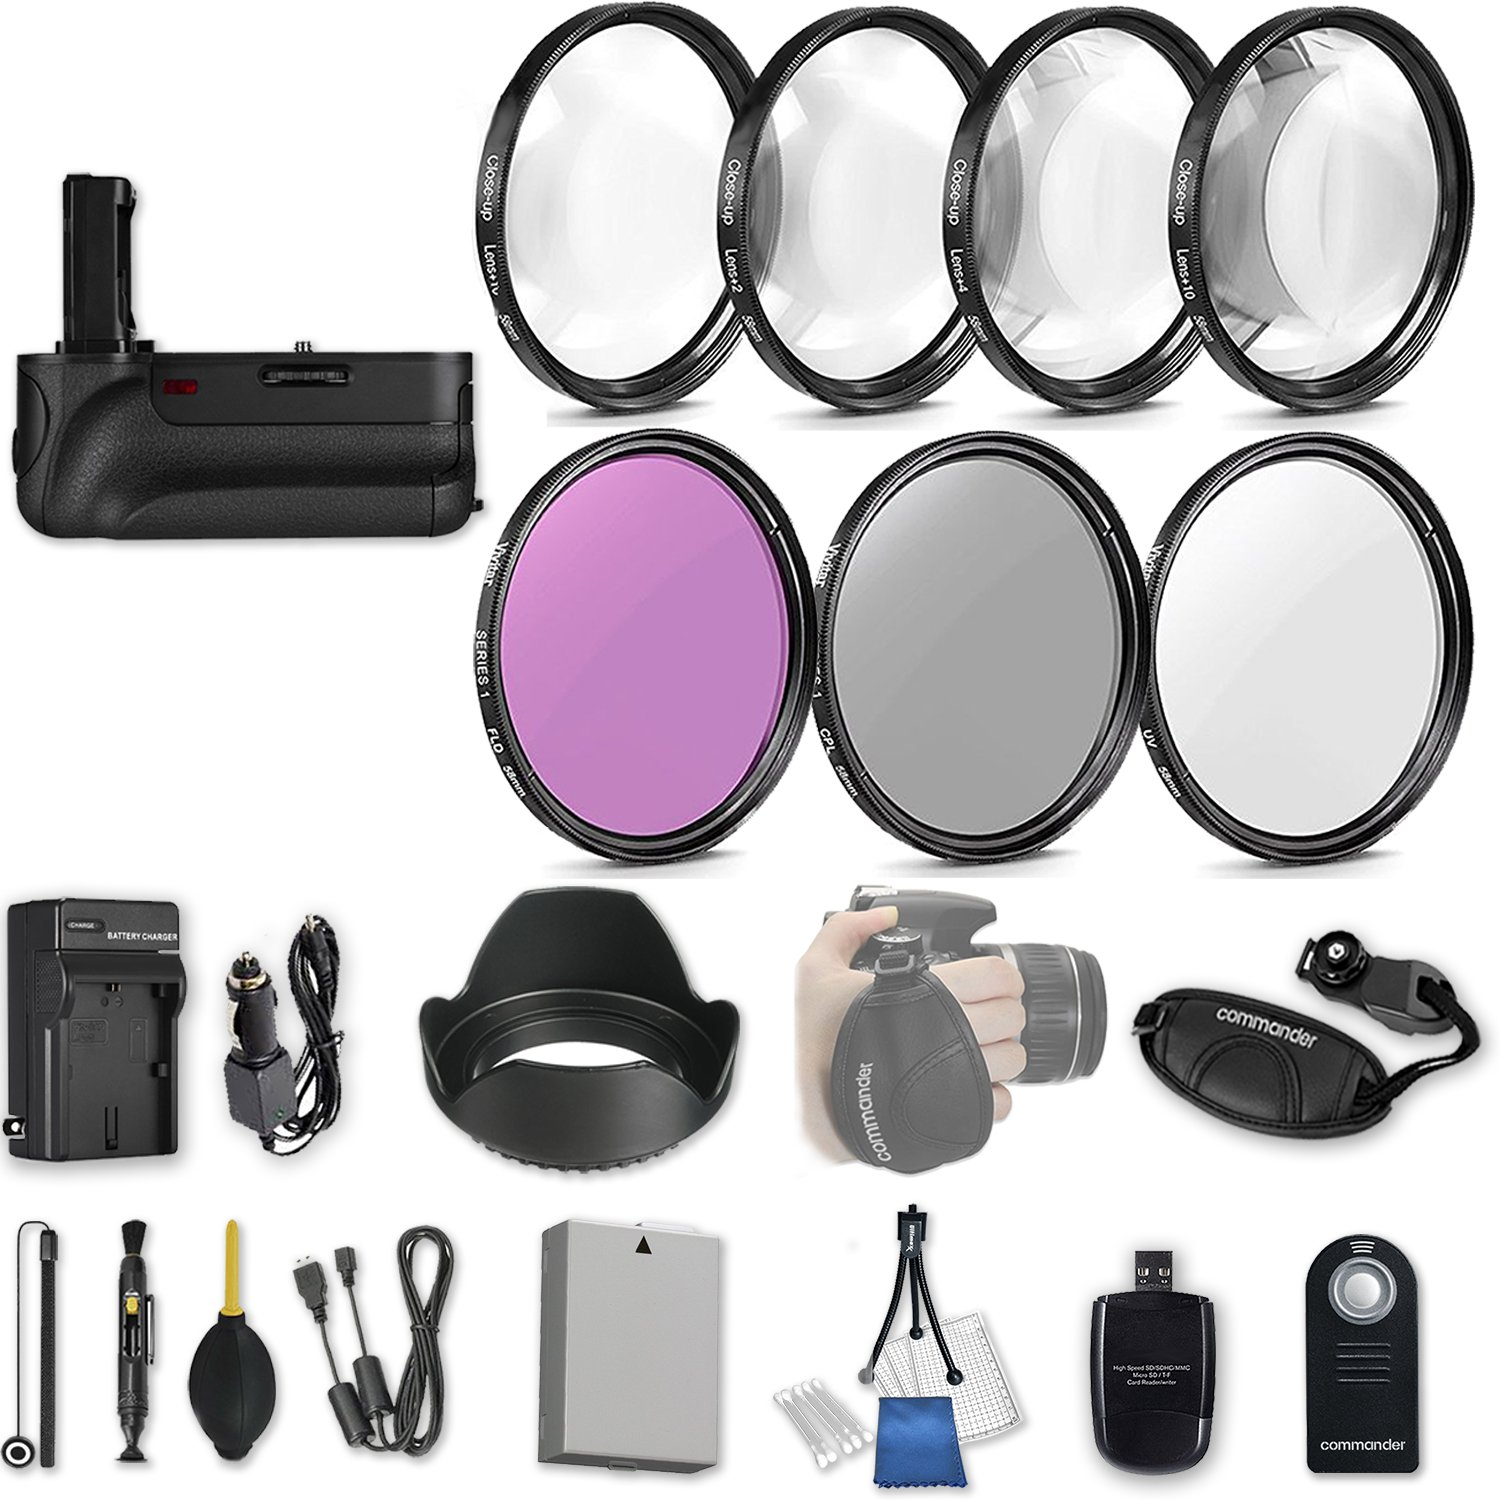 58mm 21 Pc Accessory Kit for Canon EOS Rebel T3i, T5i, 300D, 700D DSLRs with Battery Grip, UV CPL FLD Filters, & 4 Piece Macro Close-Up Set, Battery, and More by 33rd Street